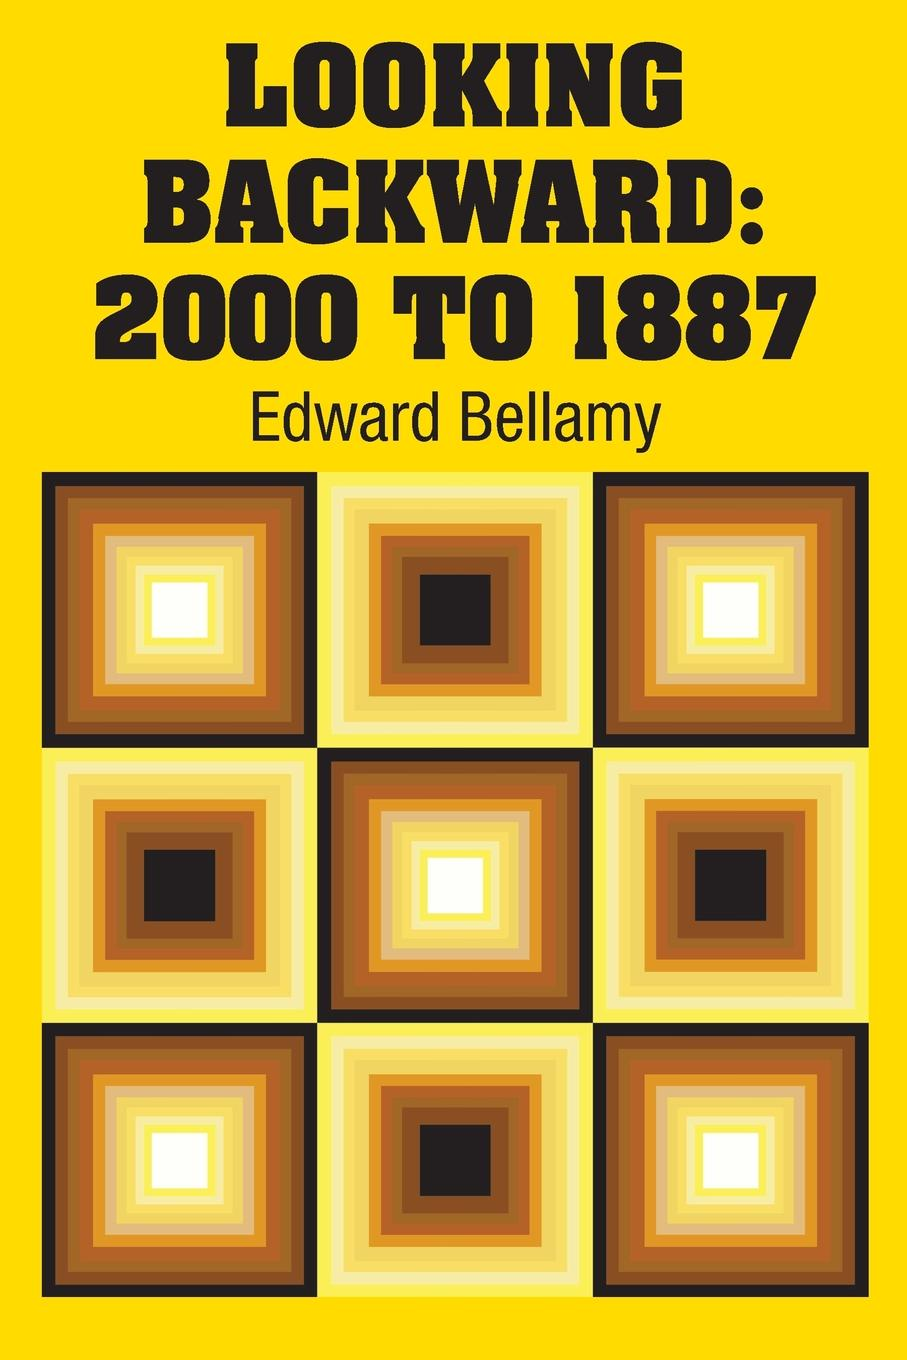 Edward Bellamy Looking Backward. 2000 to 1887 walt thrun looking backward from the future until messiah the prince